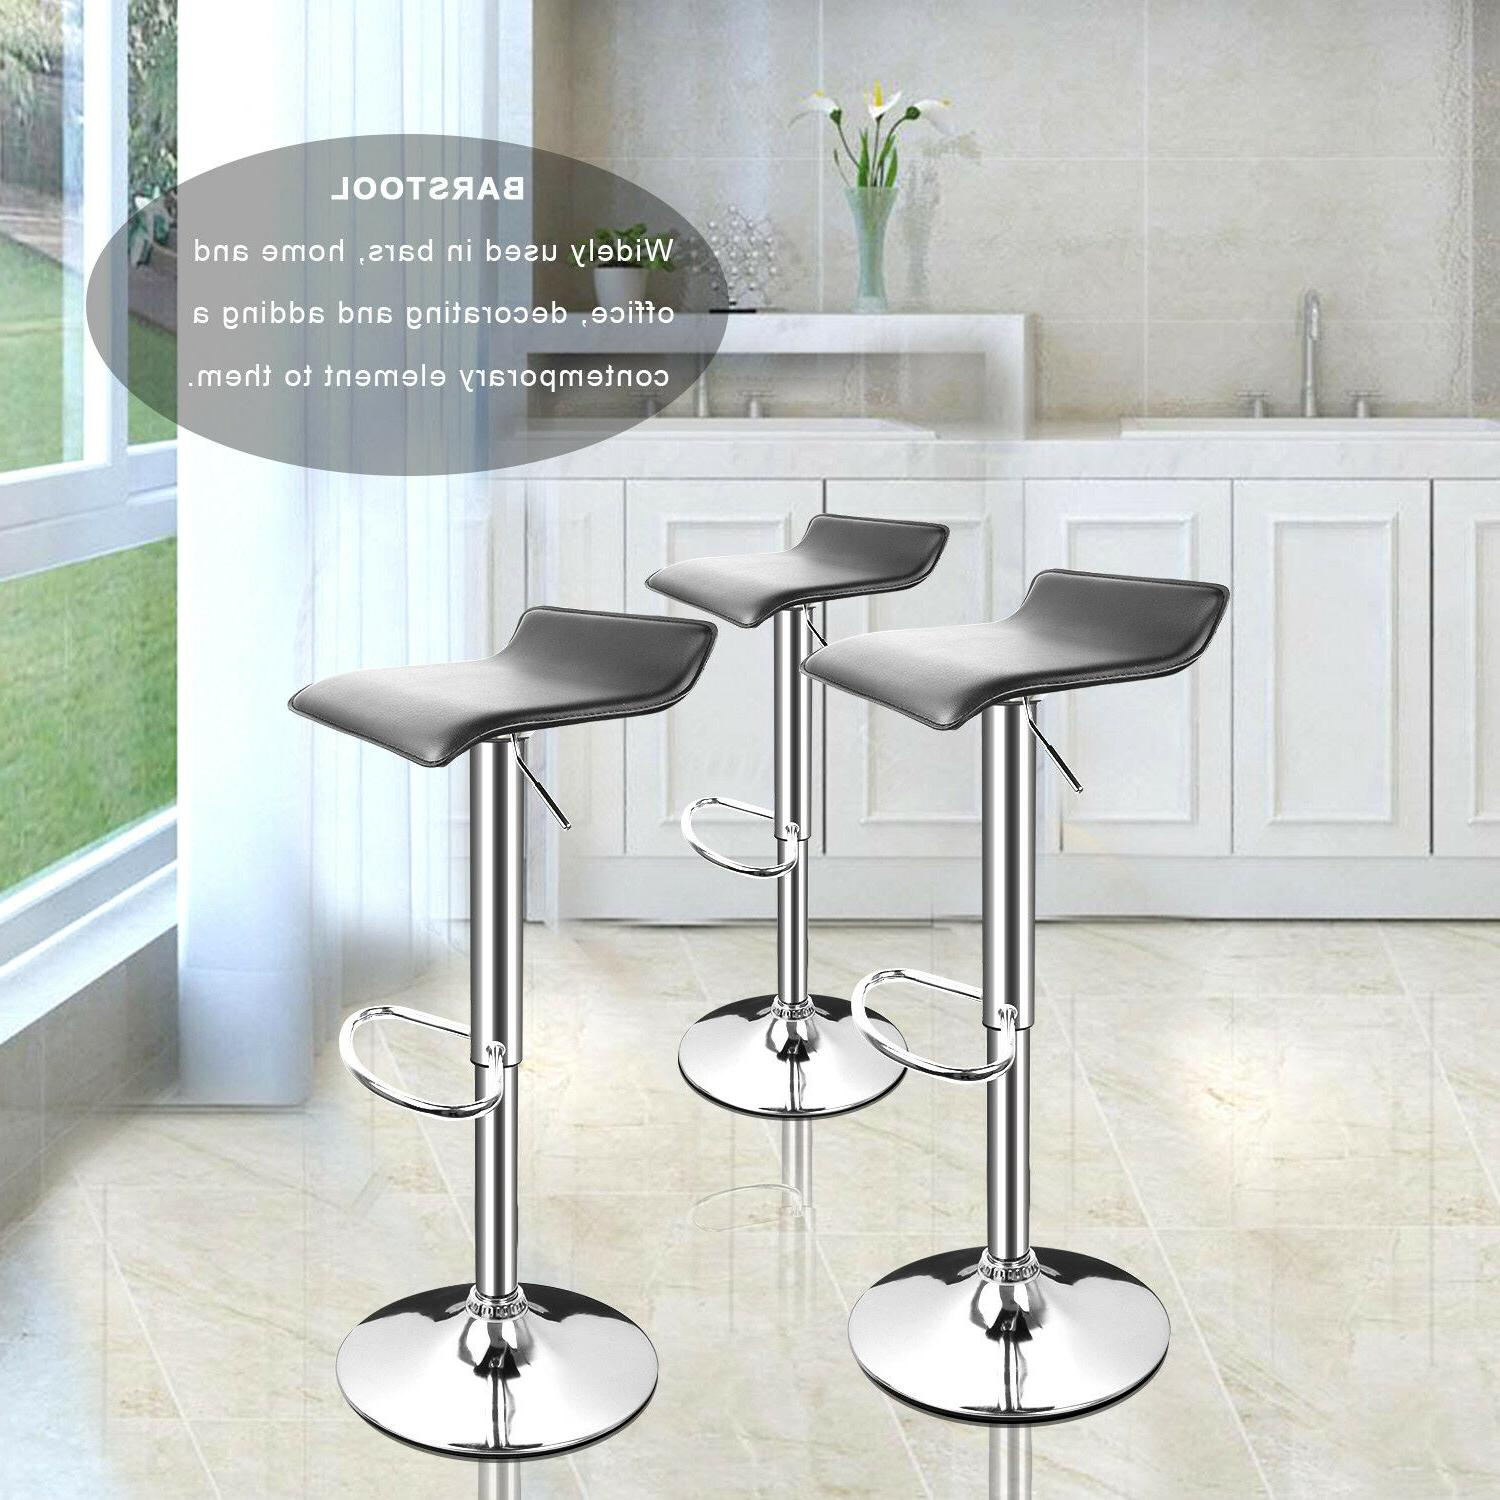 2 Stools Leather Swivel Chairs